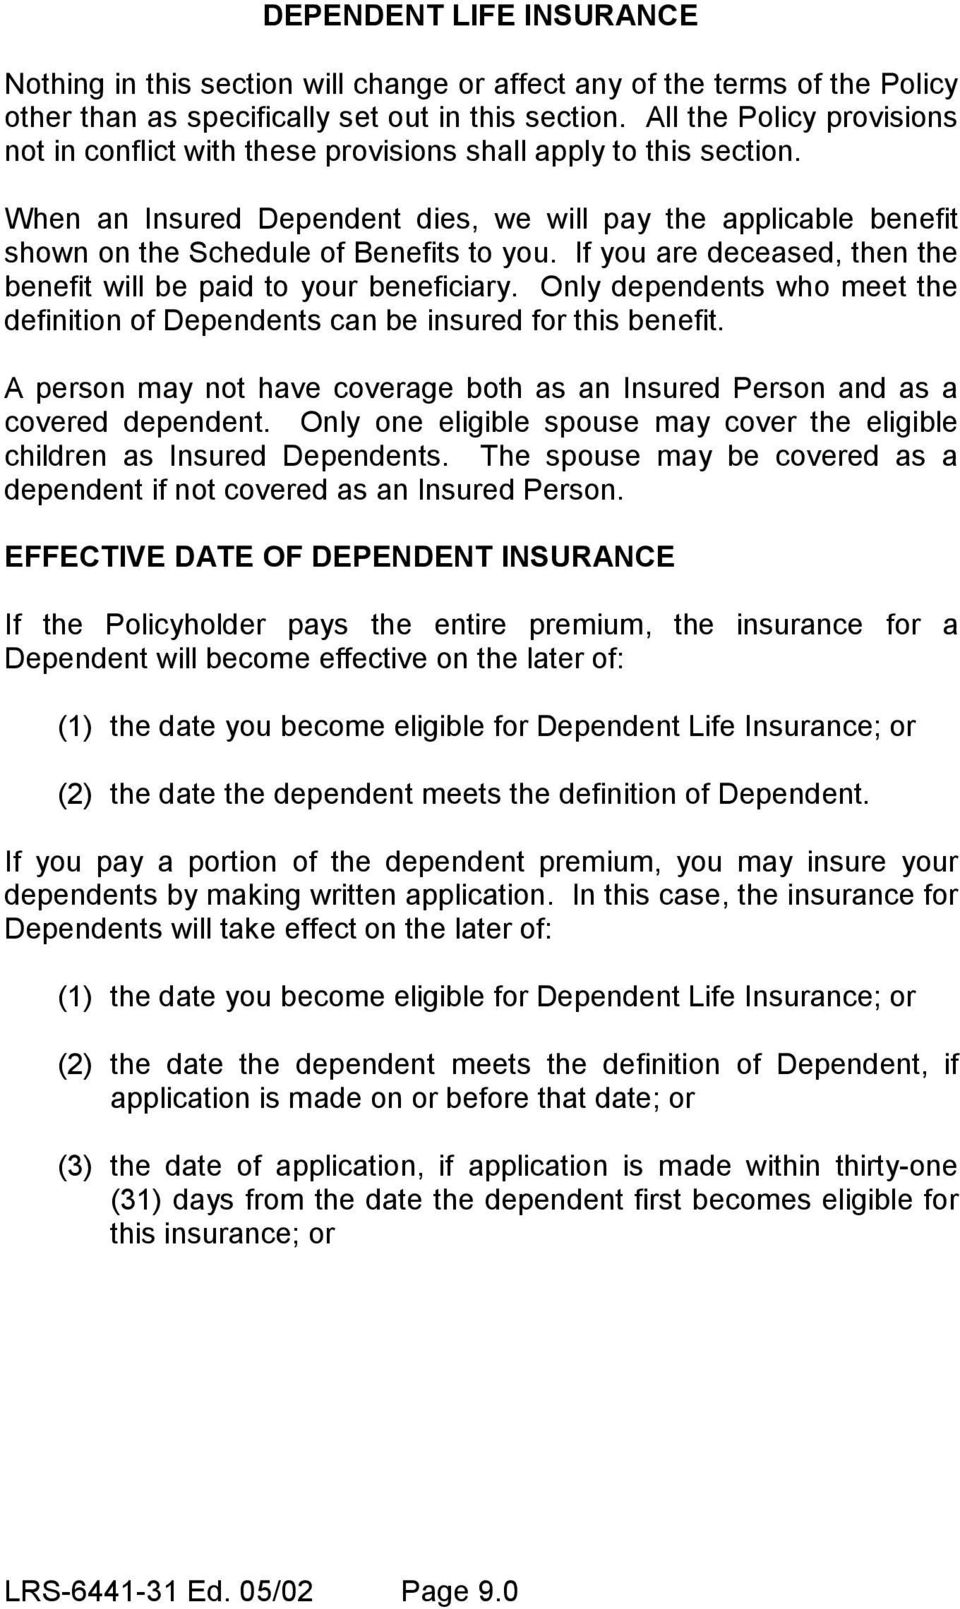 When an Insured Dependent dies, we will pay the applicable benefit shown on the Schedule of Benefits to you. If you are deceased, then the benefit will be paid to your beneficiary.